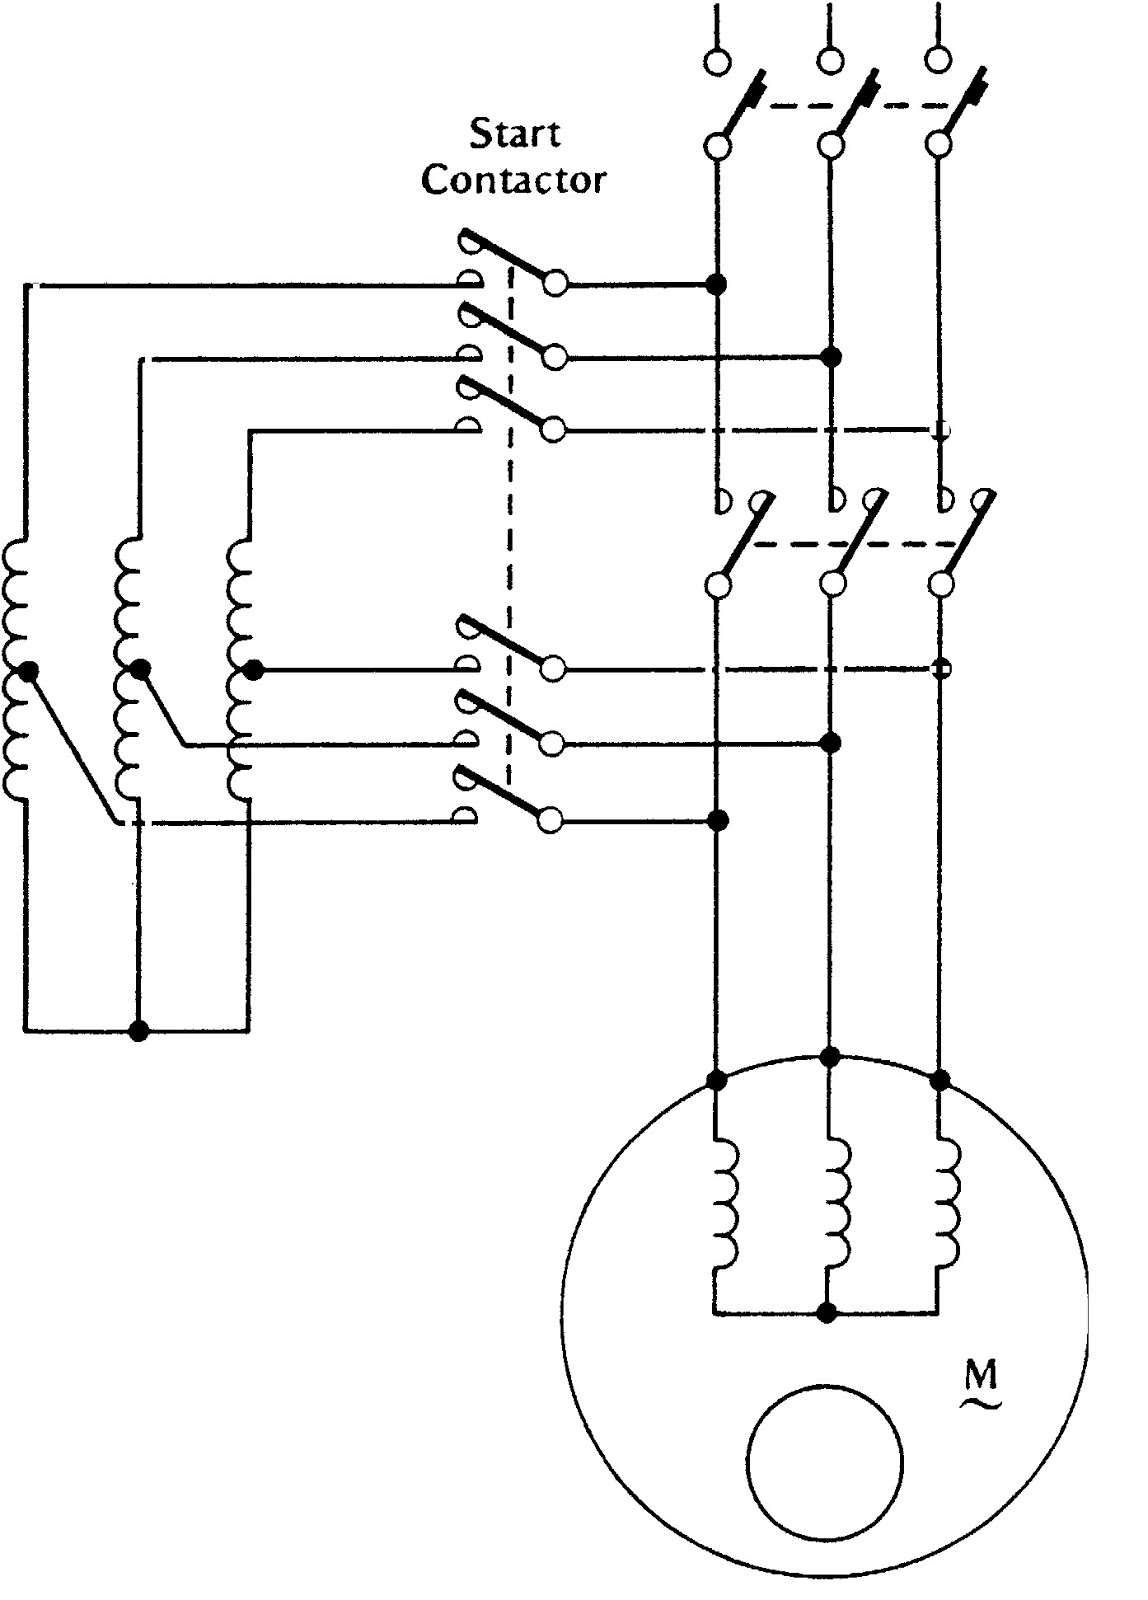 clarke single phase induction motor wiring diagram exchange 2013 mail flow engineering photos videos and articels search